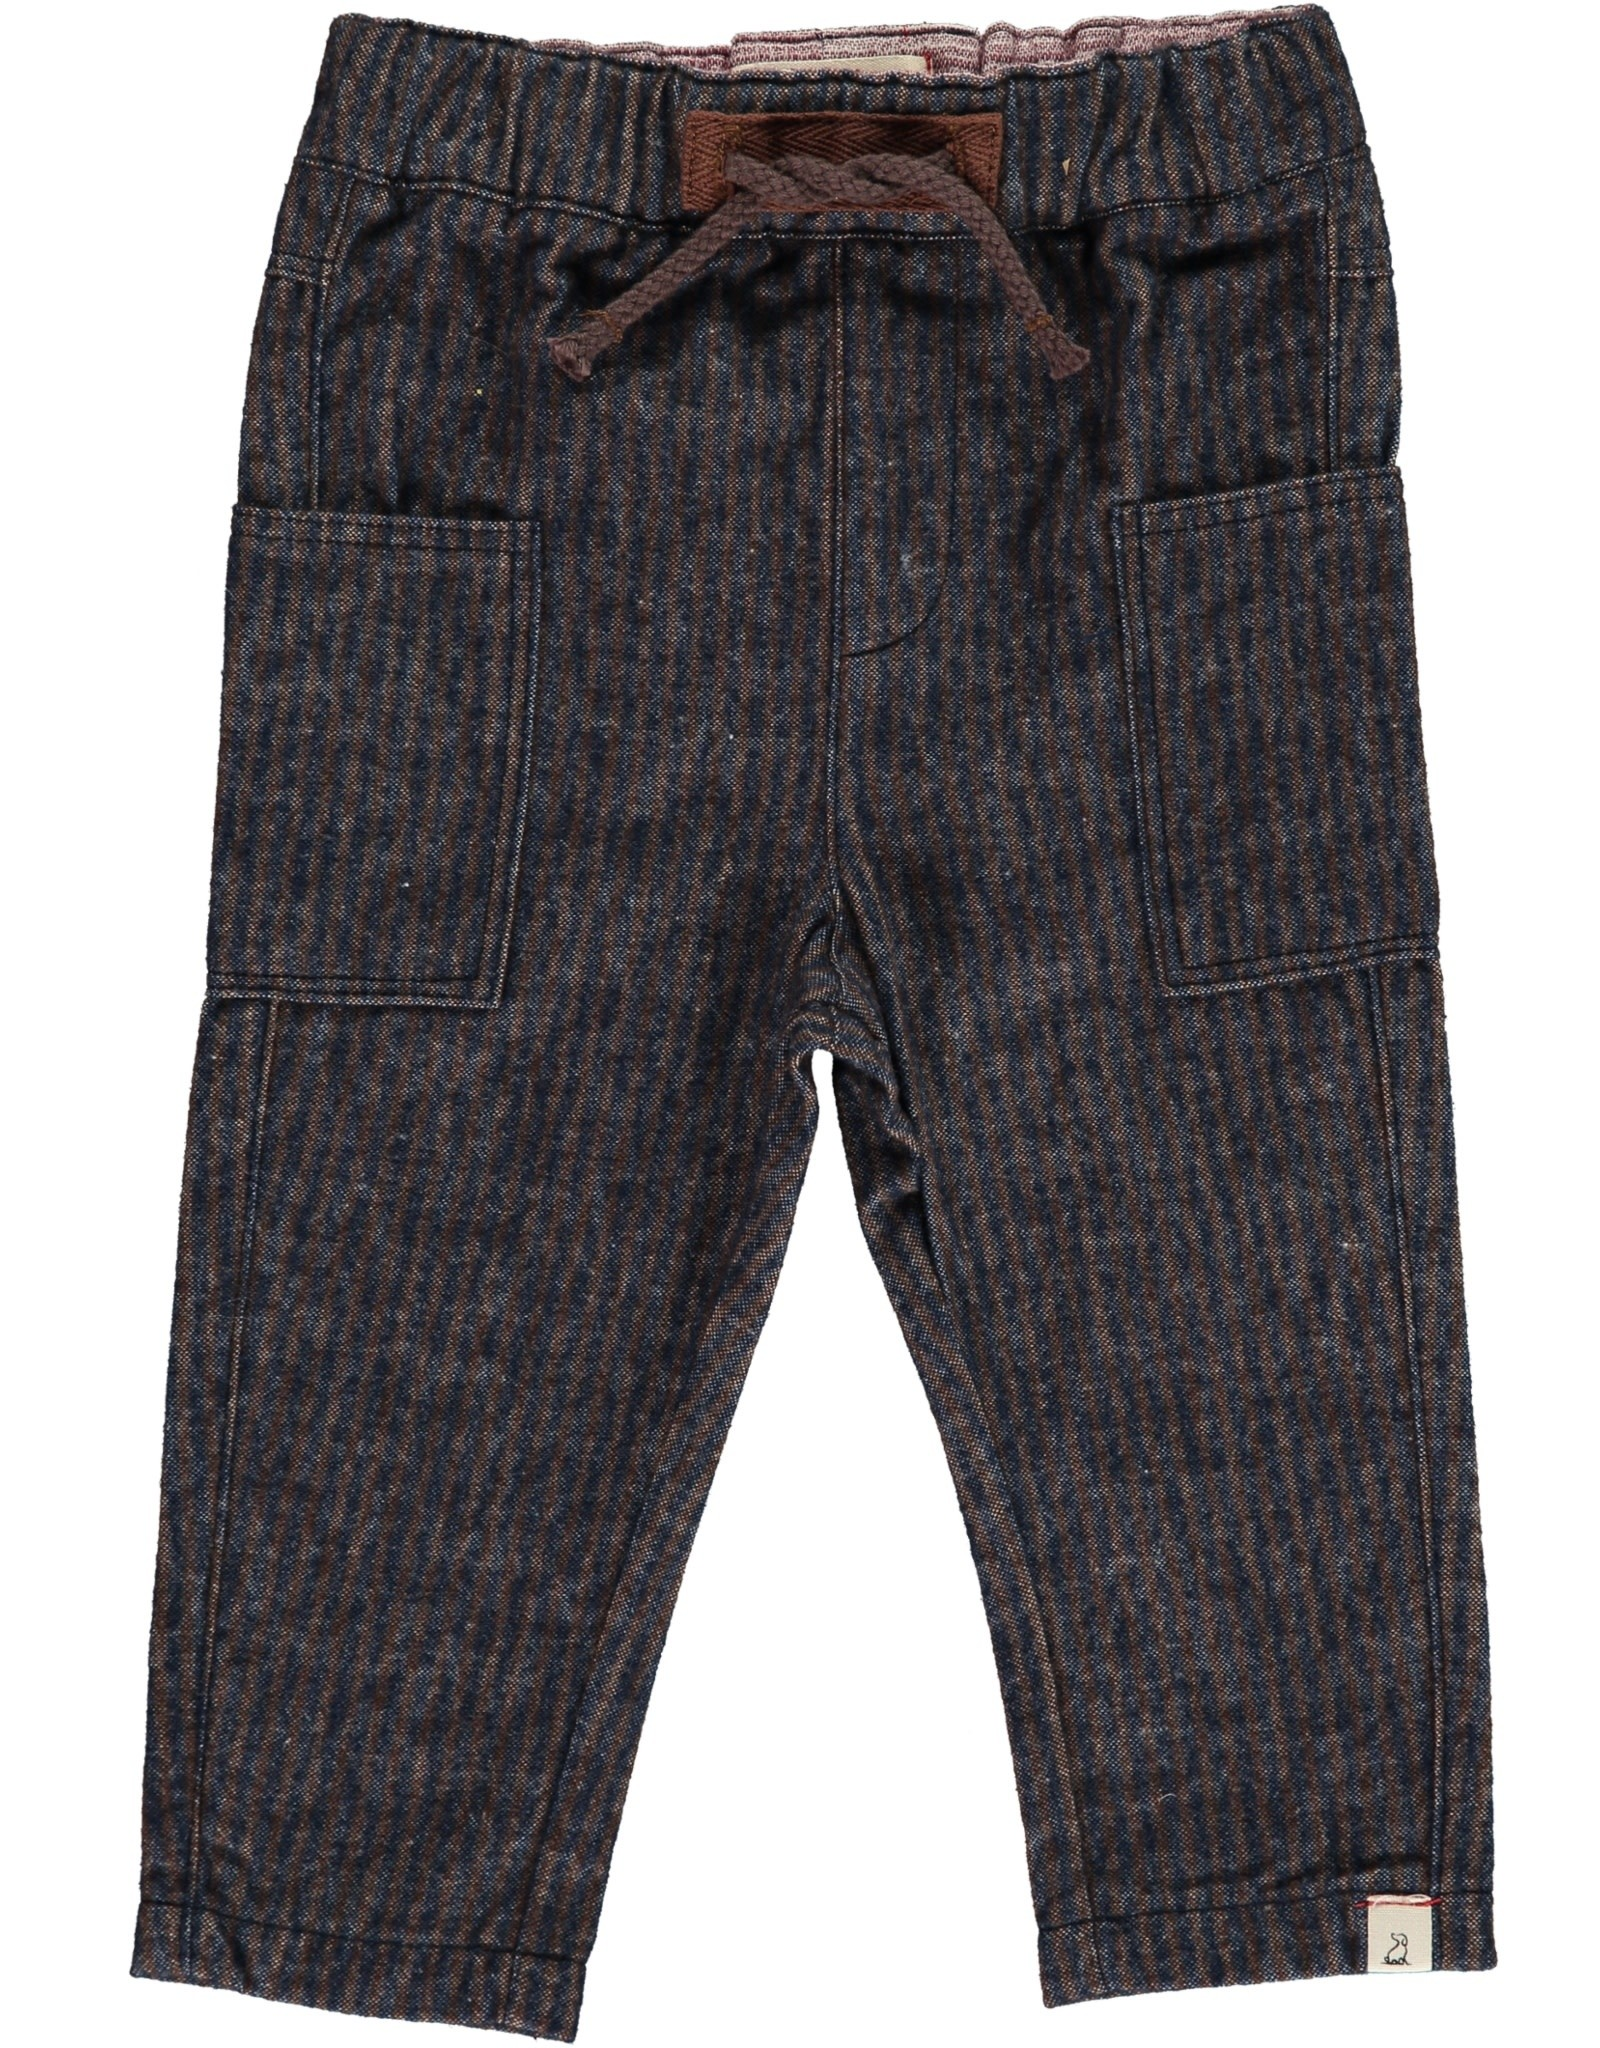 Navy/Brown woven pants